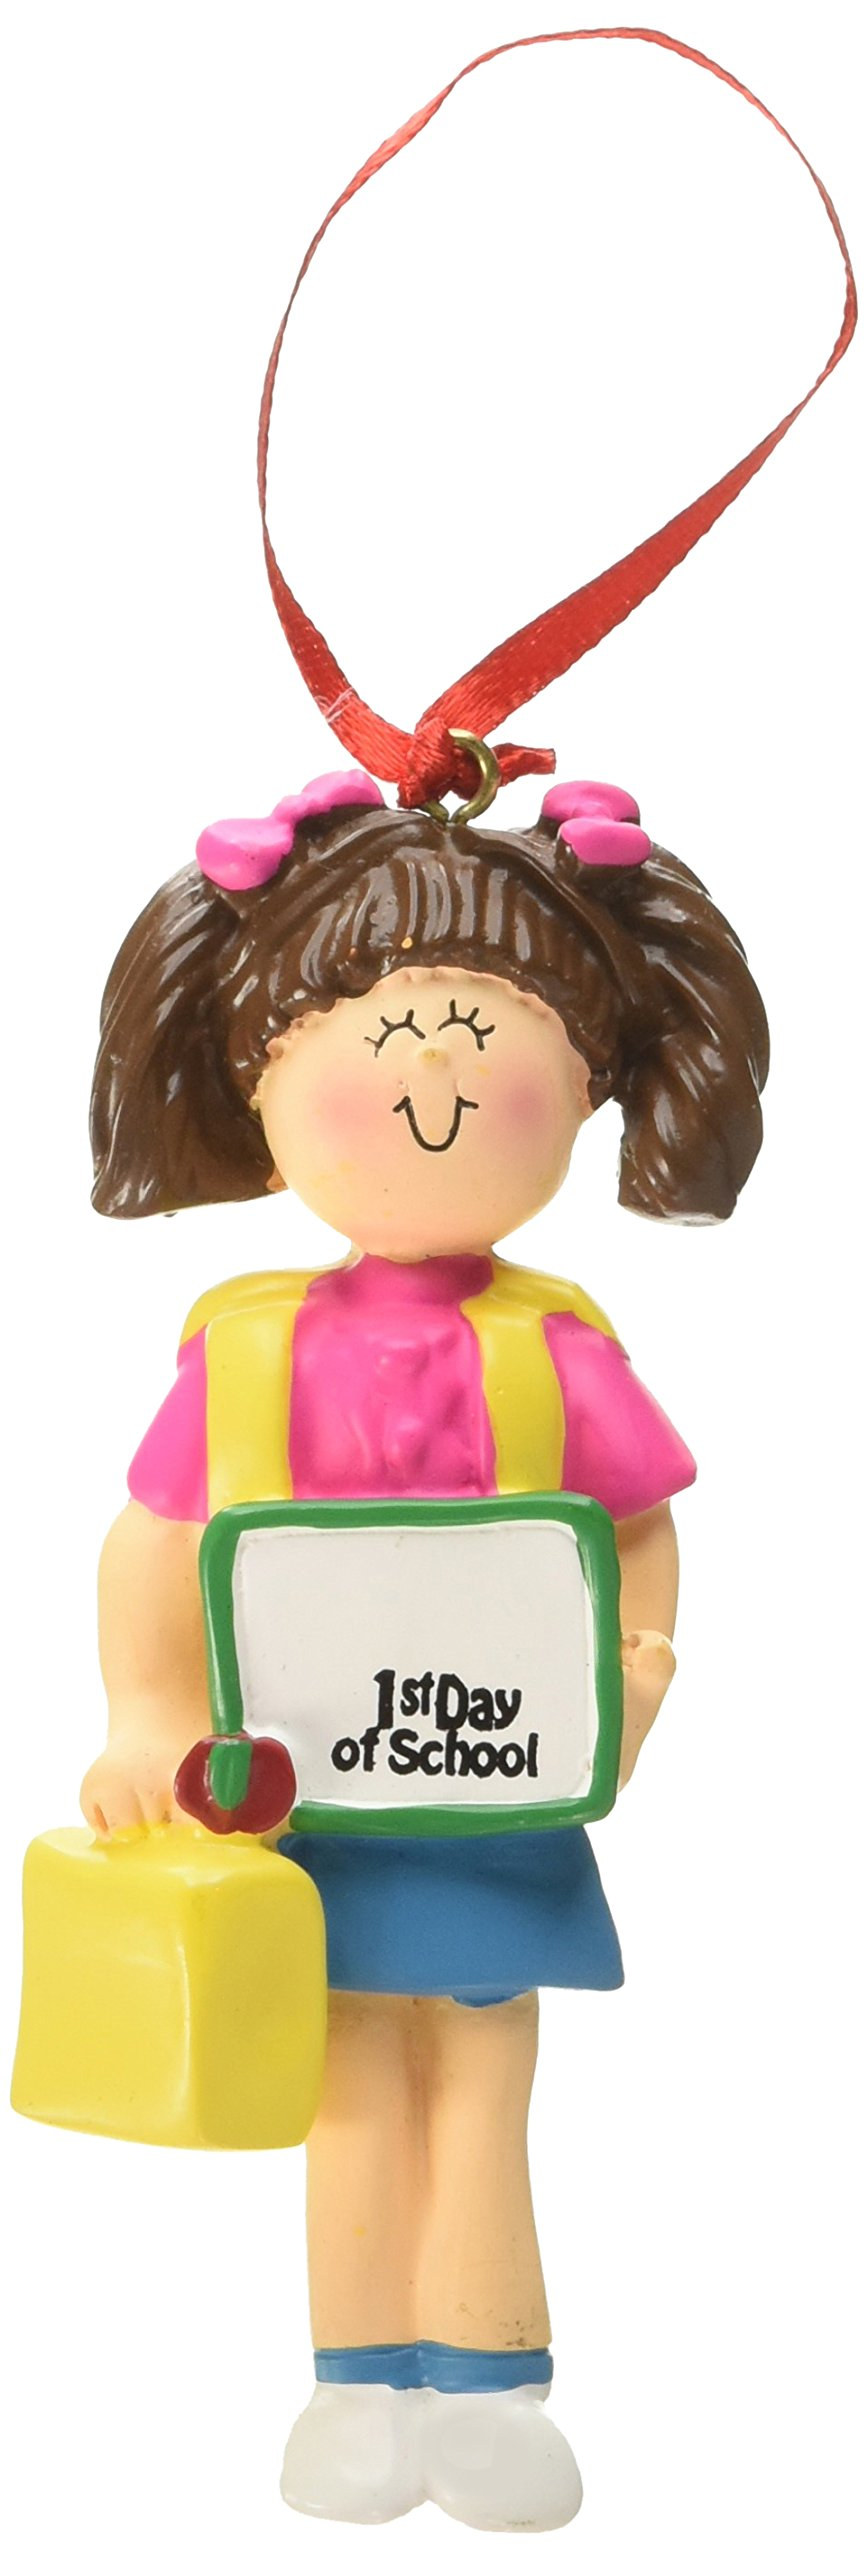 Ornament Central OC-167-FBR First Day of School Female Figurine